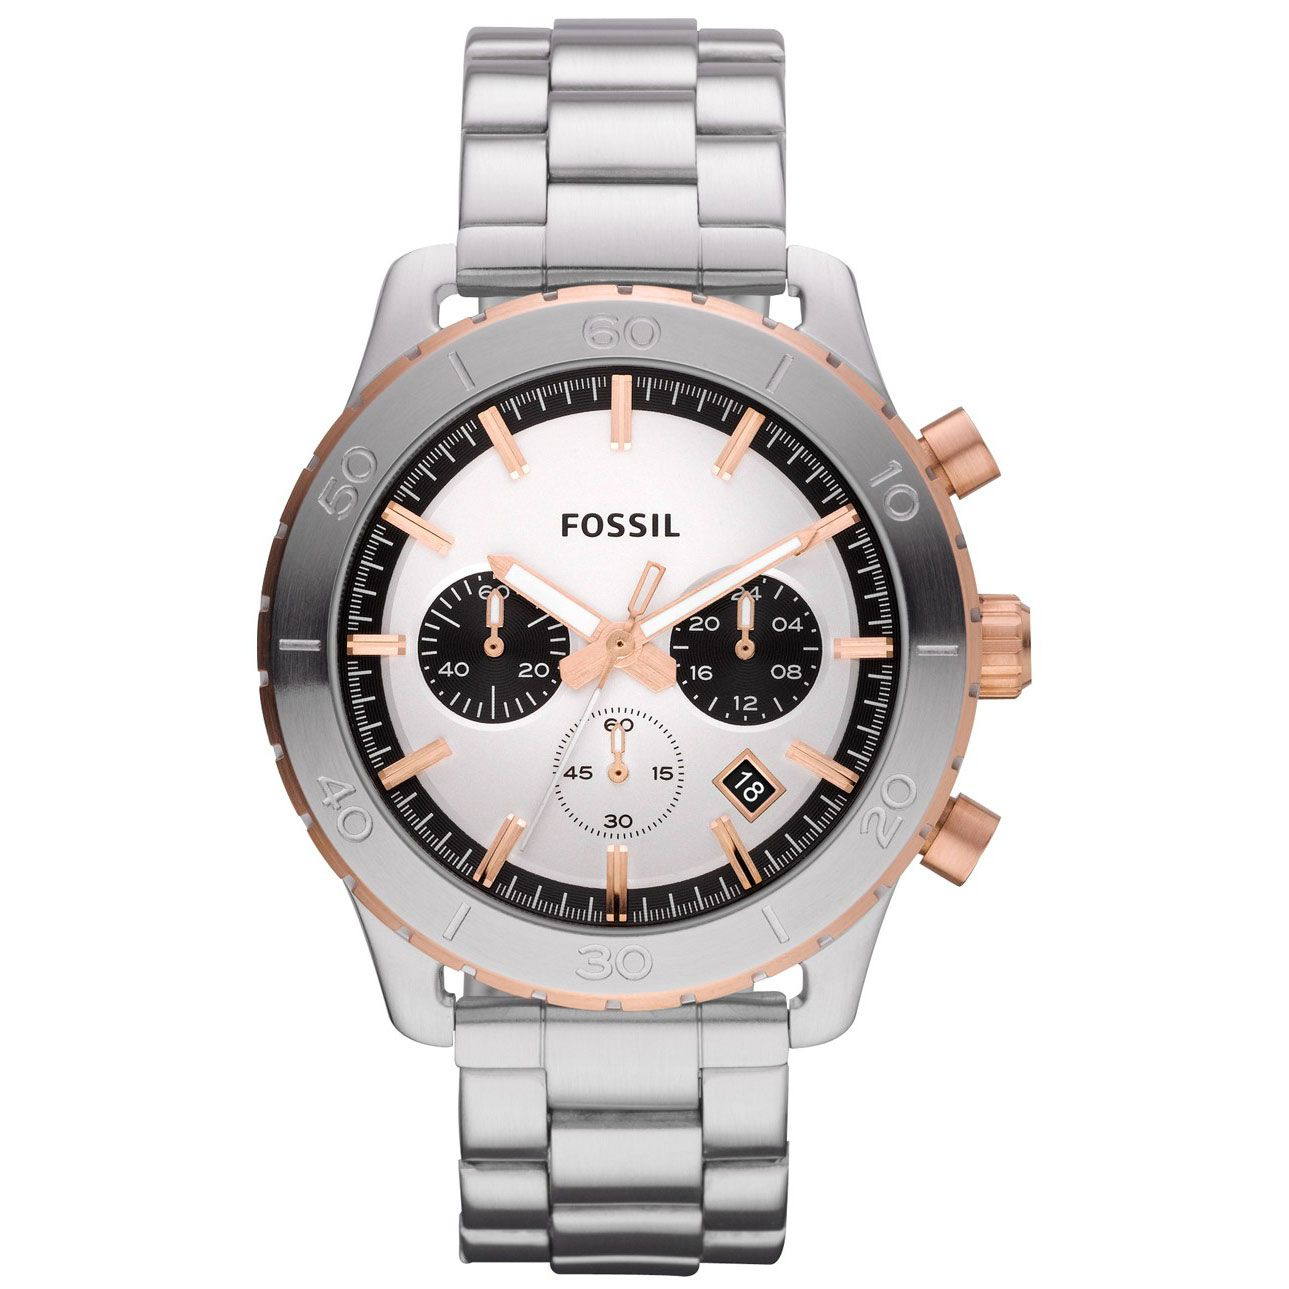 Fossil CH2815 Keaton Stainless Steel Watch Fossil